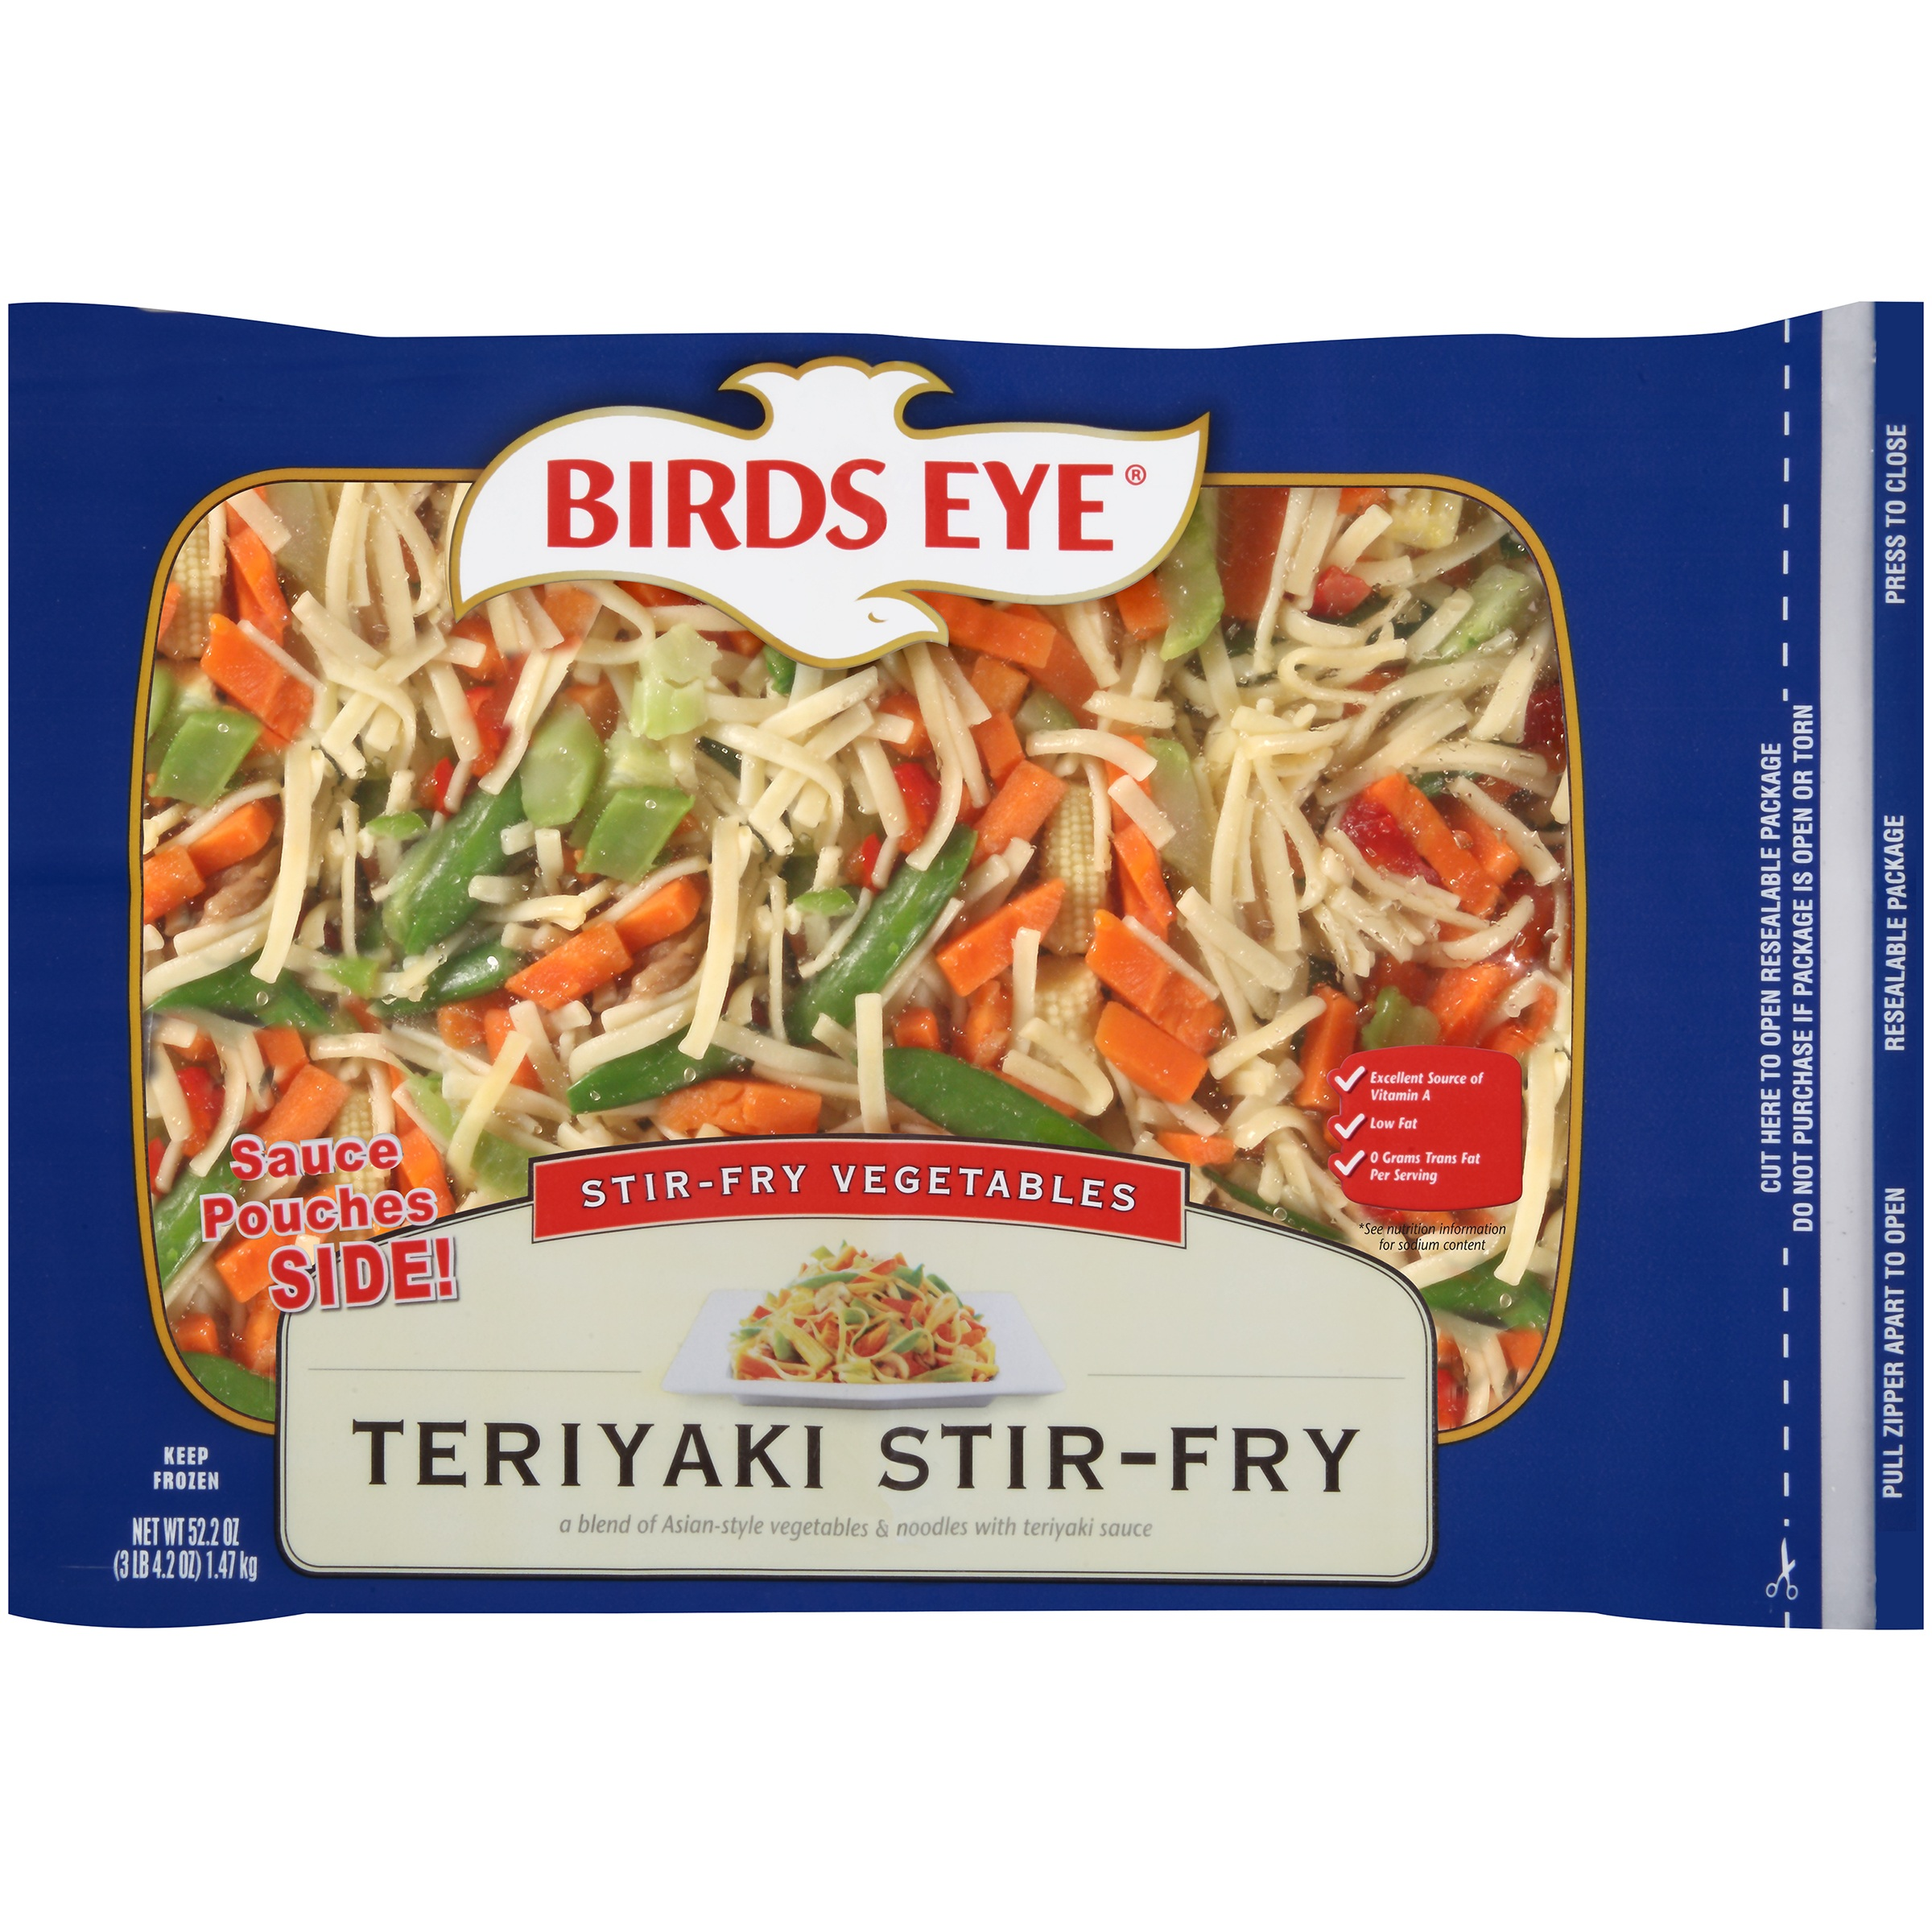 Birds Eye Teriyaki Stir-Fry Vegetables, 52.5 oz